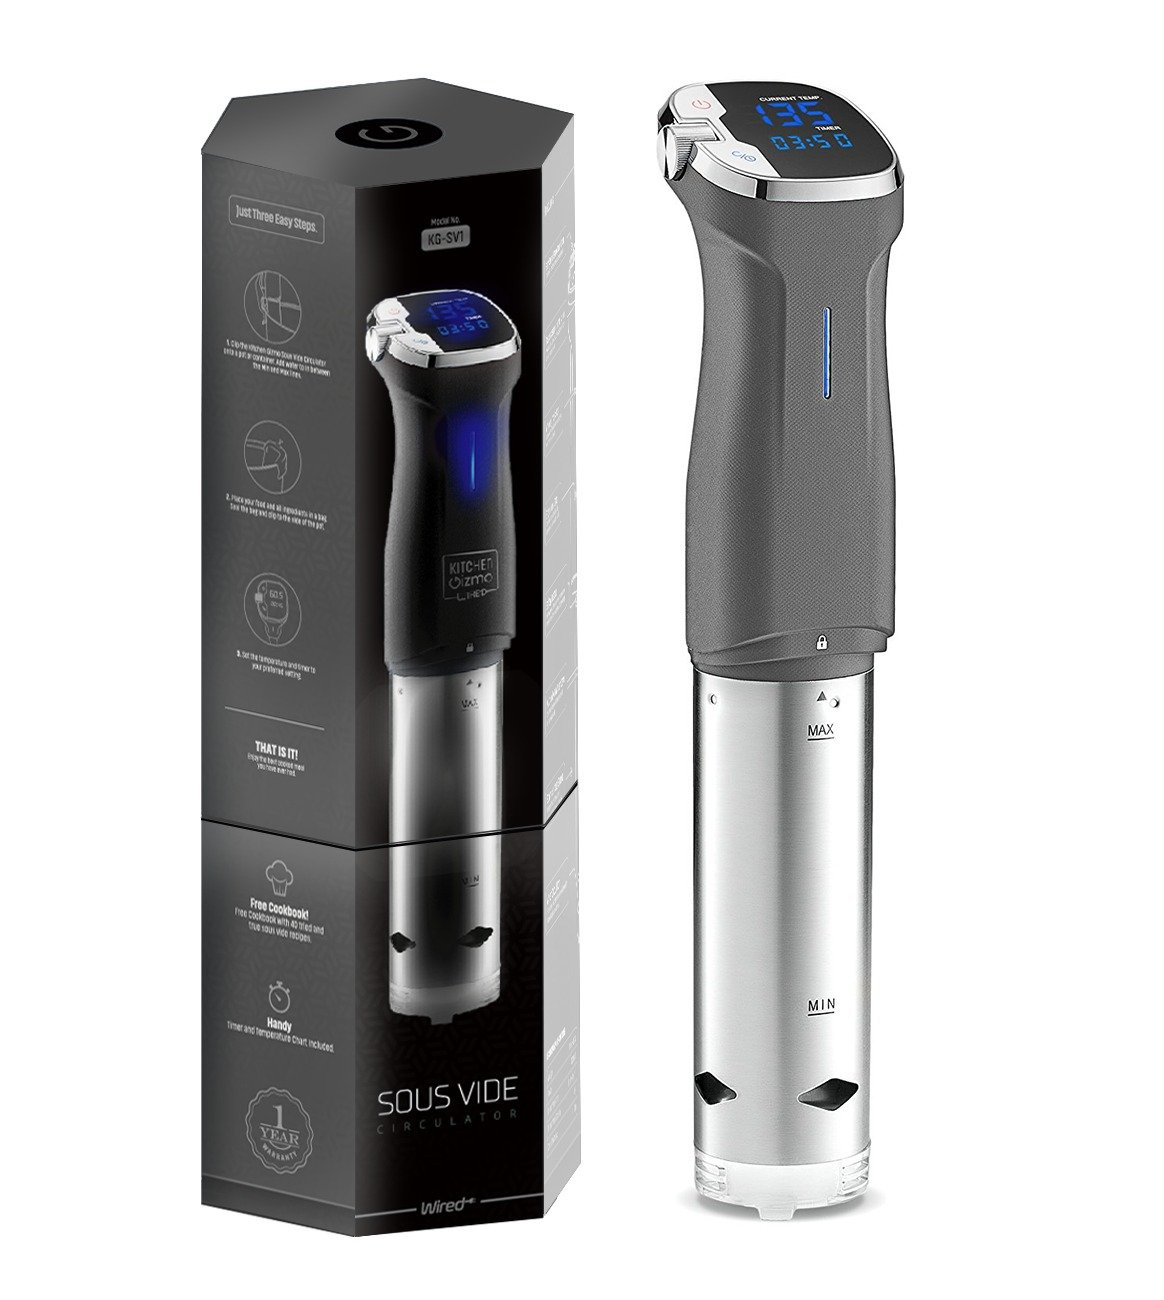 Kitchen Gizmo, Simplified Sous Vide Immersion Circulator Black Friday Deals